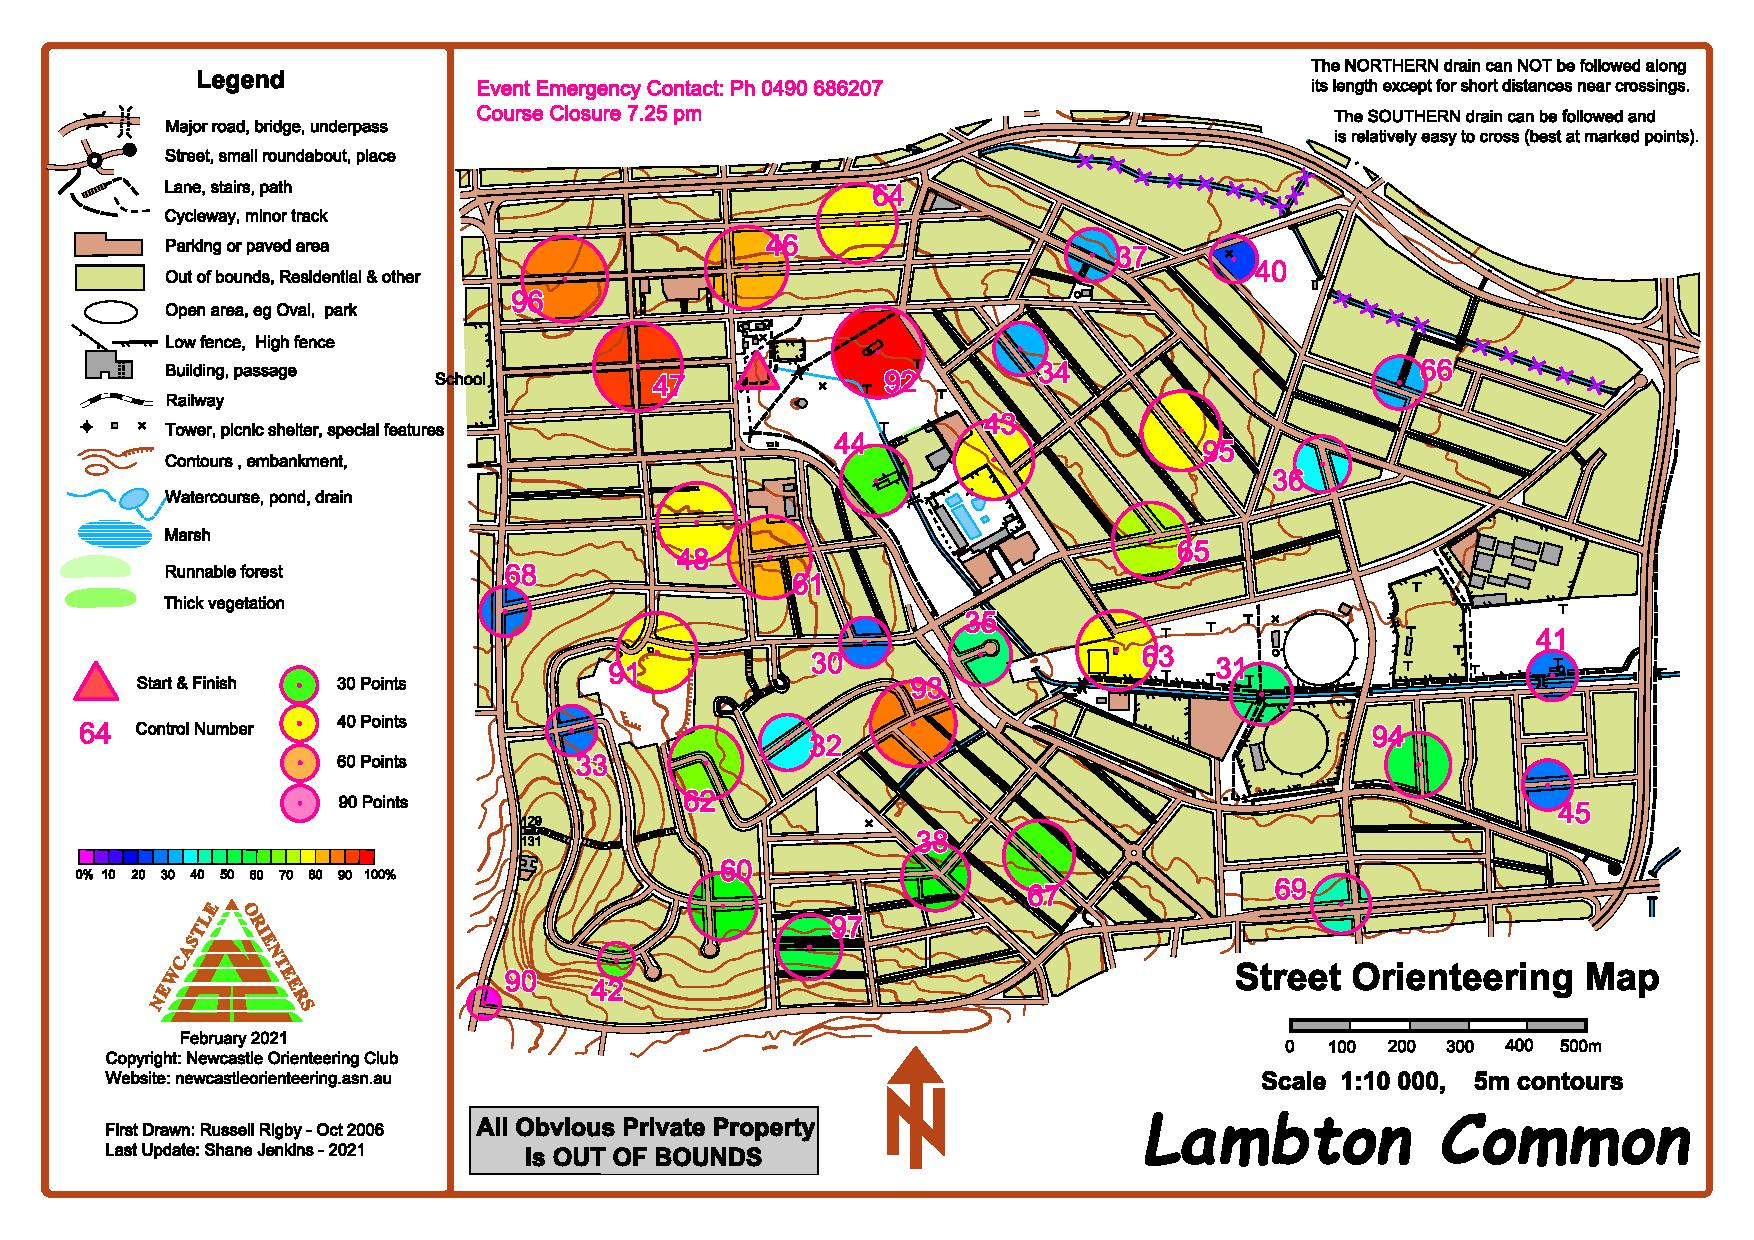 Lambton 2020 21 Heat Map